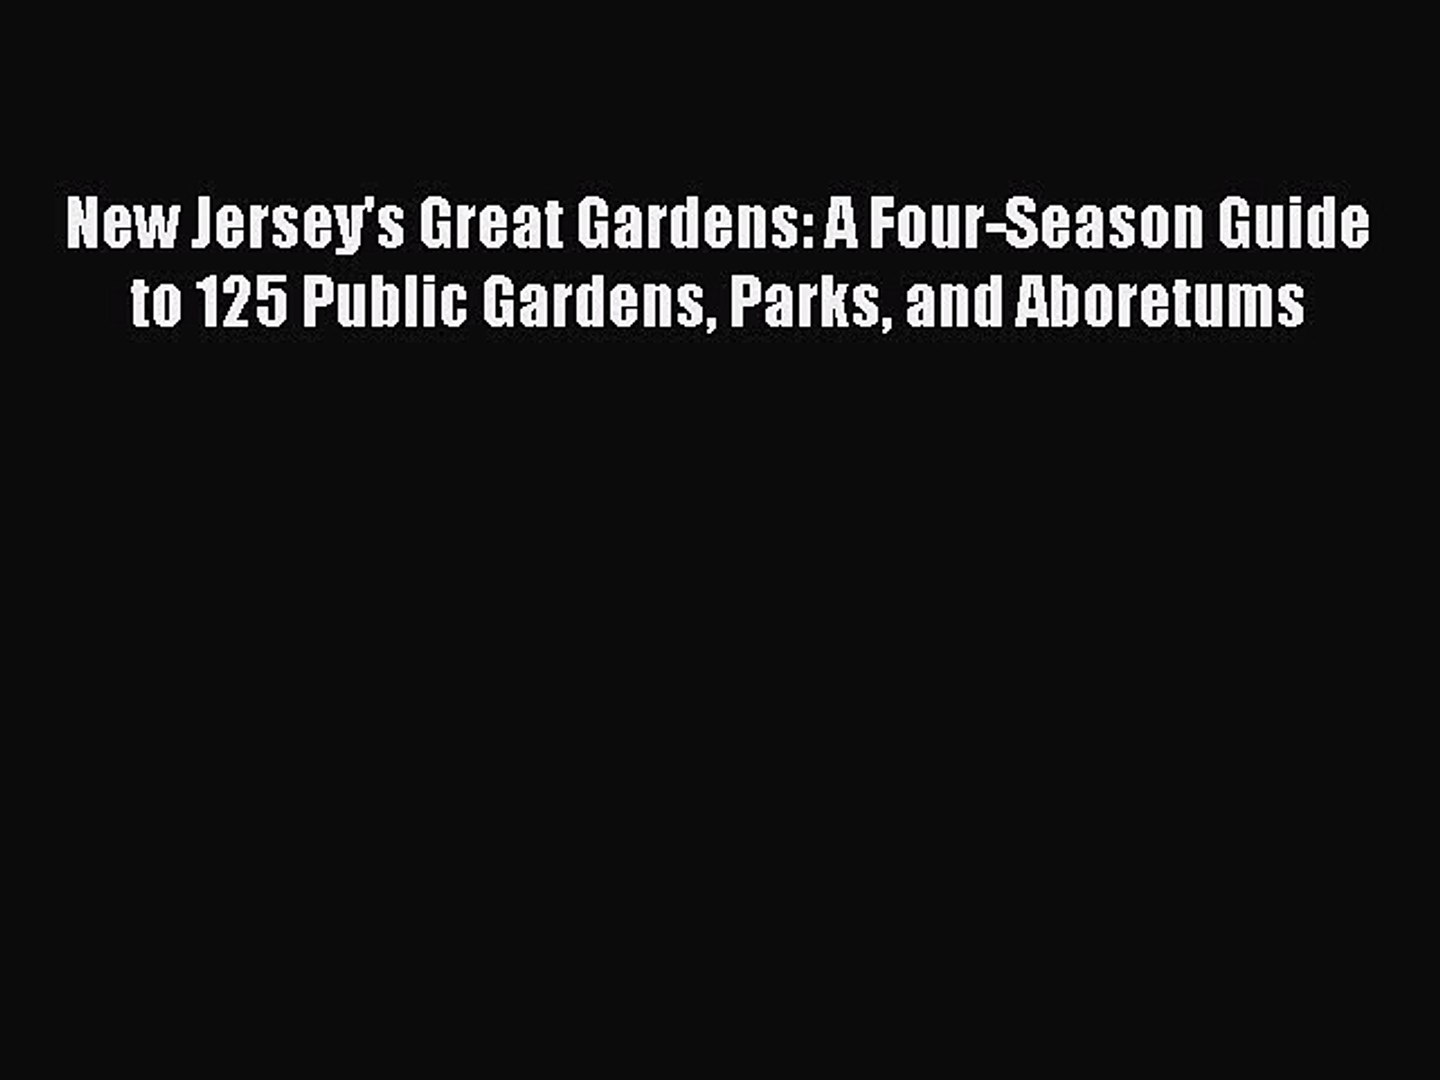 Read New Jersey's Great Gardens: A Four-Season Guide to 125 Public Gardens Parks and Aboretums